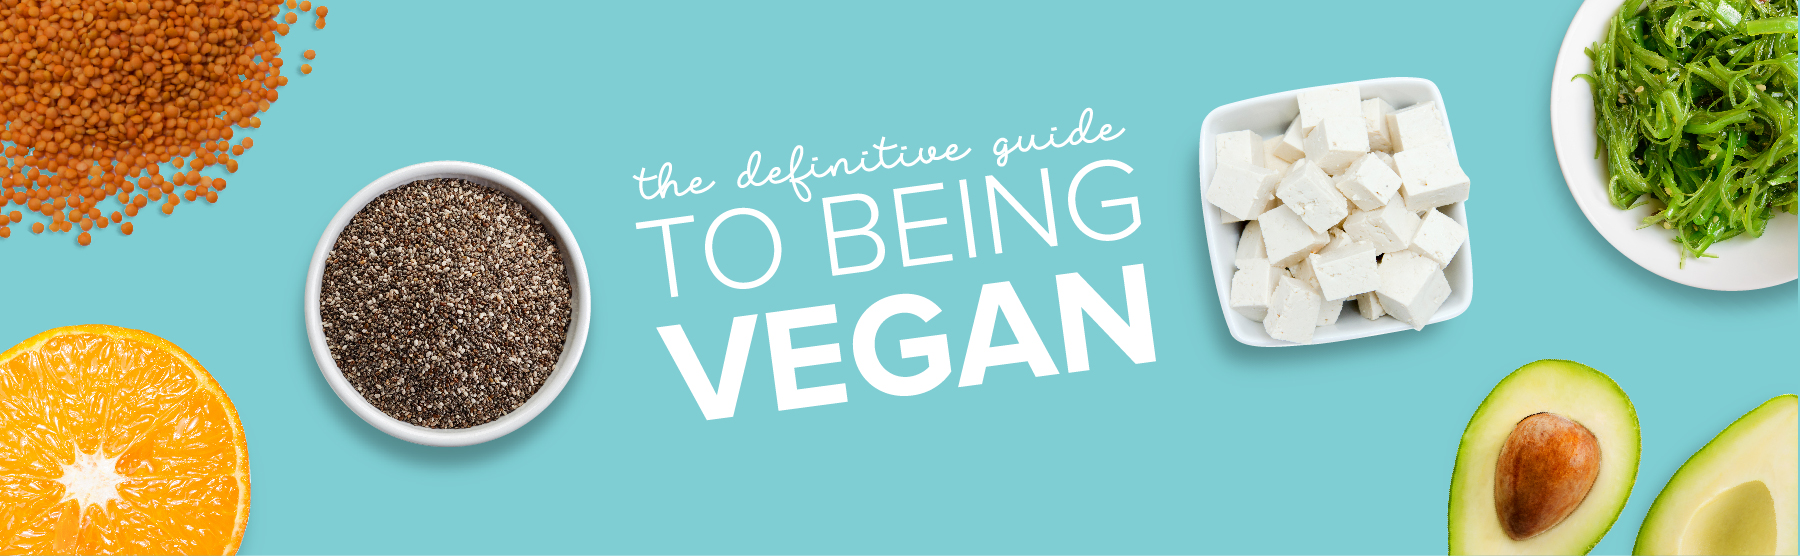 being vegan